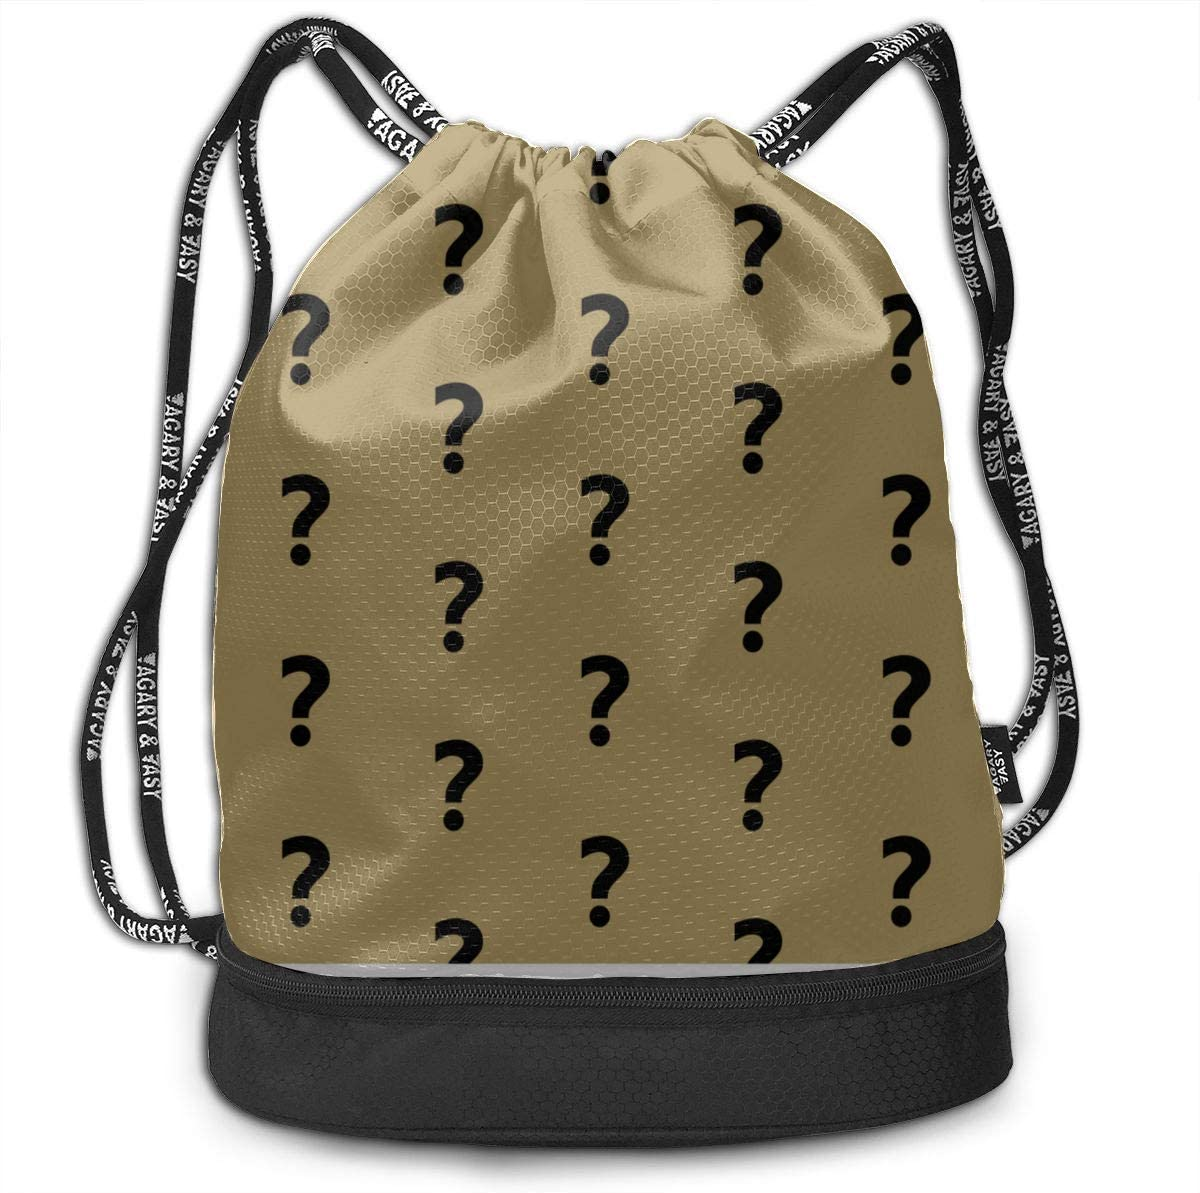 Gym Yoga Bag Question Mark Creatative Gym Drawstring Bags Backpack Sports String Bundle Backpack For Sport With Shoe Pocket Small Backpack